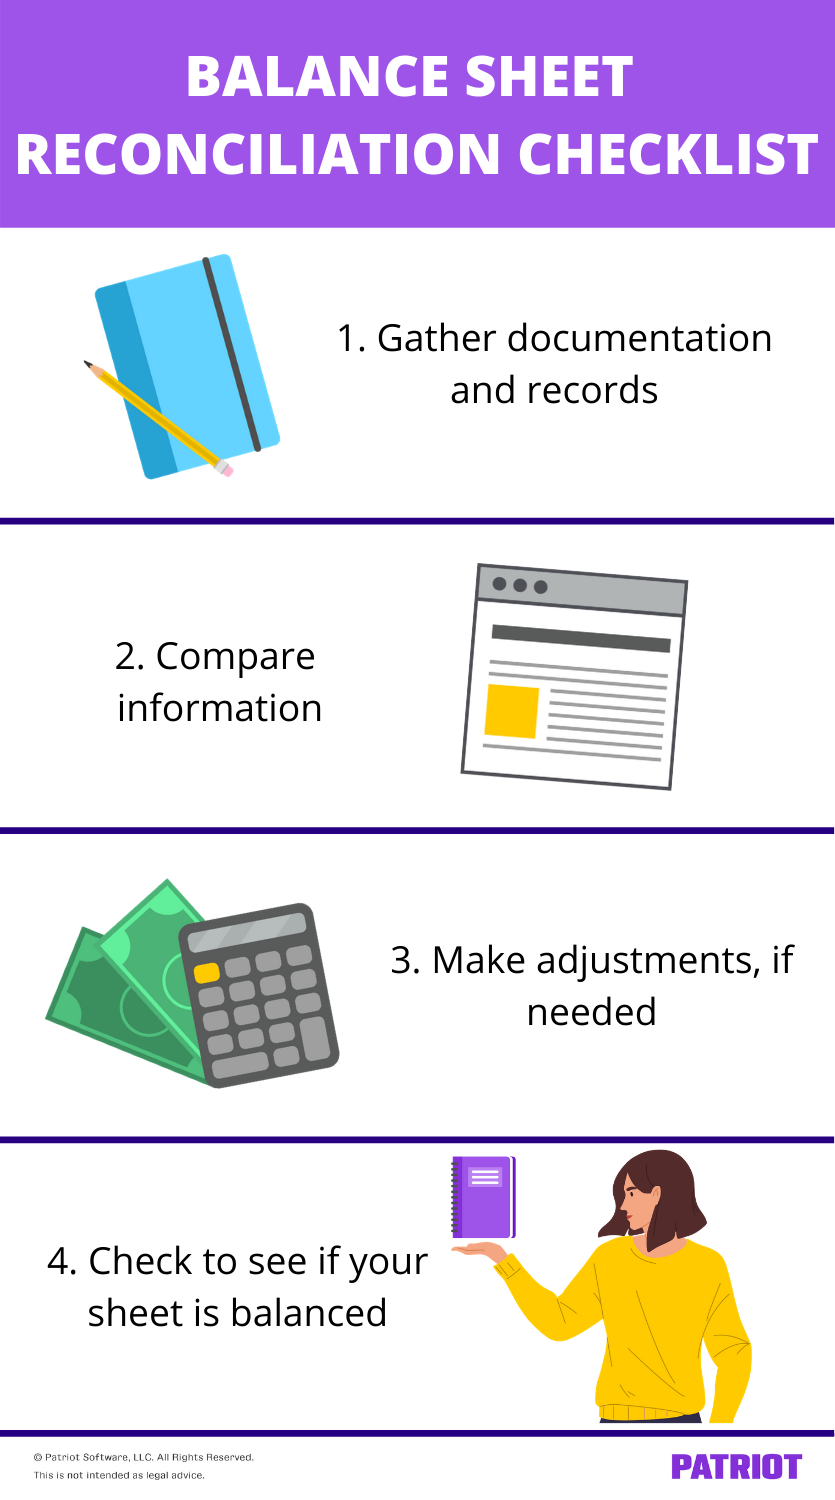 balance sheet reconciliation checklist visual